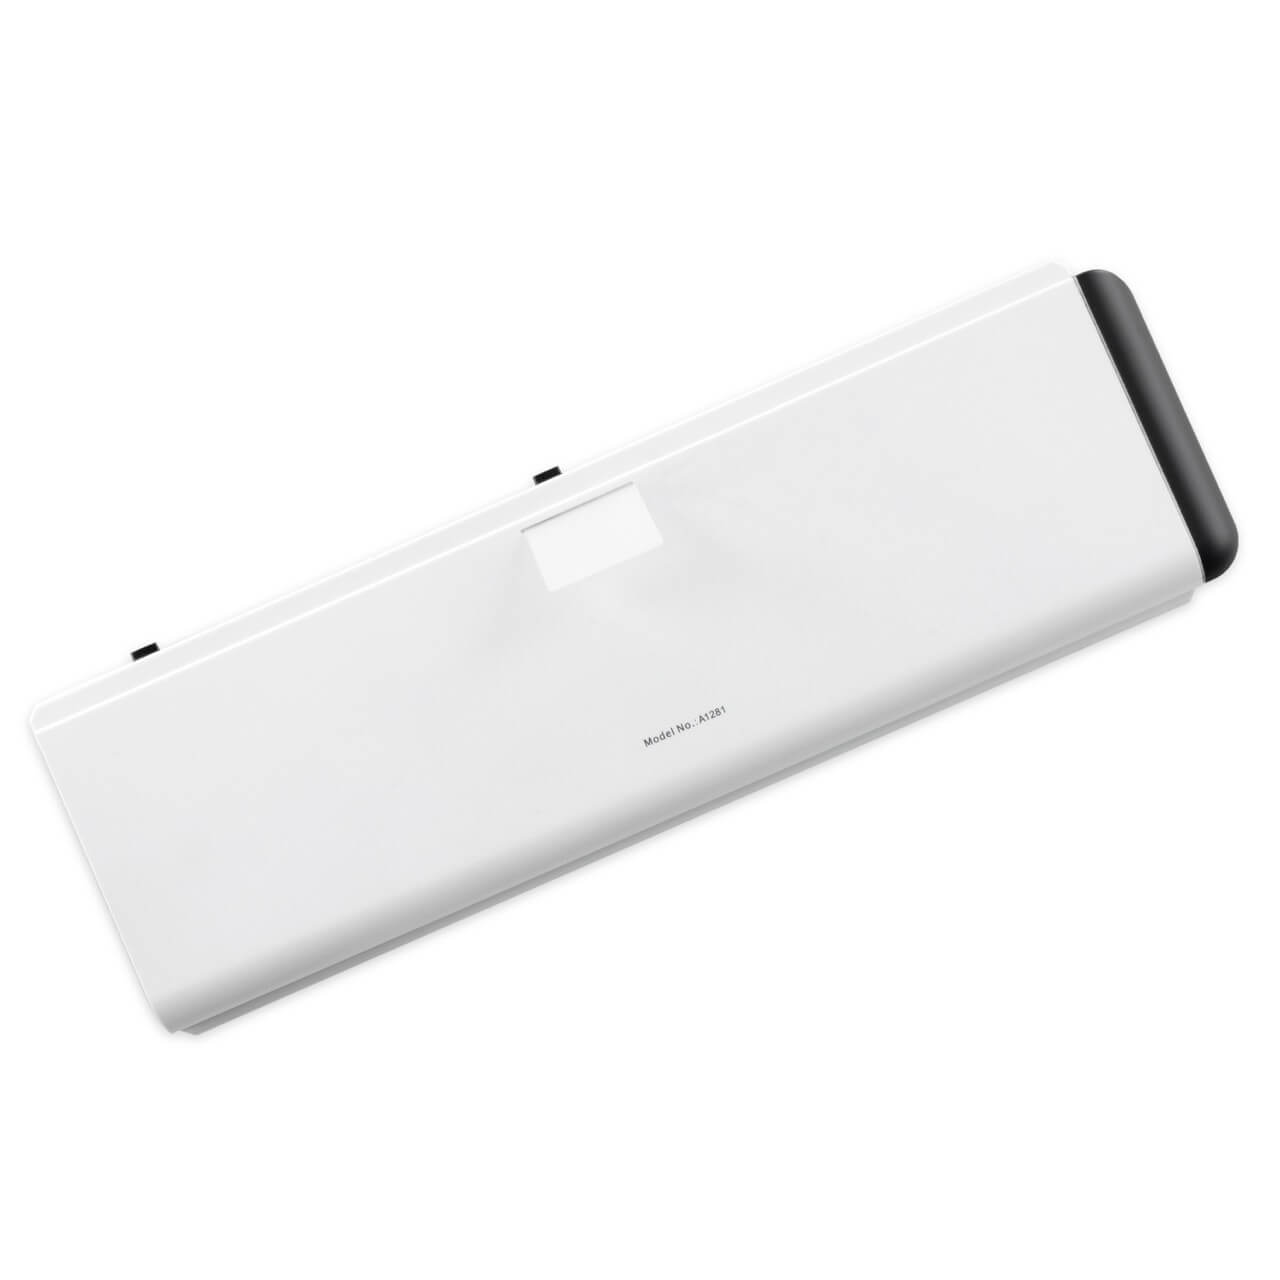 iFixit MacBook Pro 15 Unibody Replacement Battery (Late 2008/Early 2009)